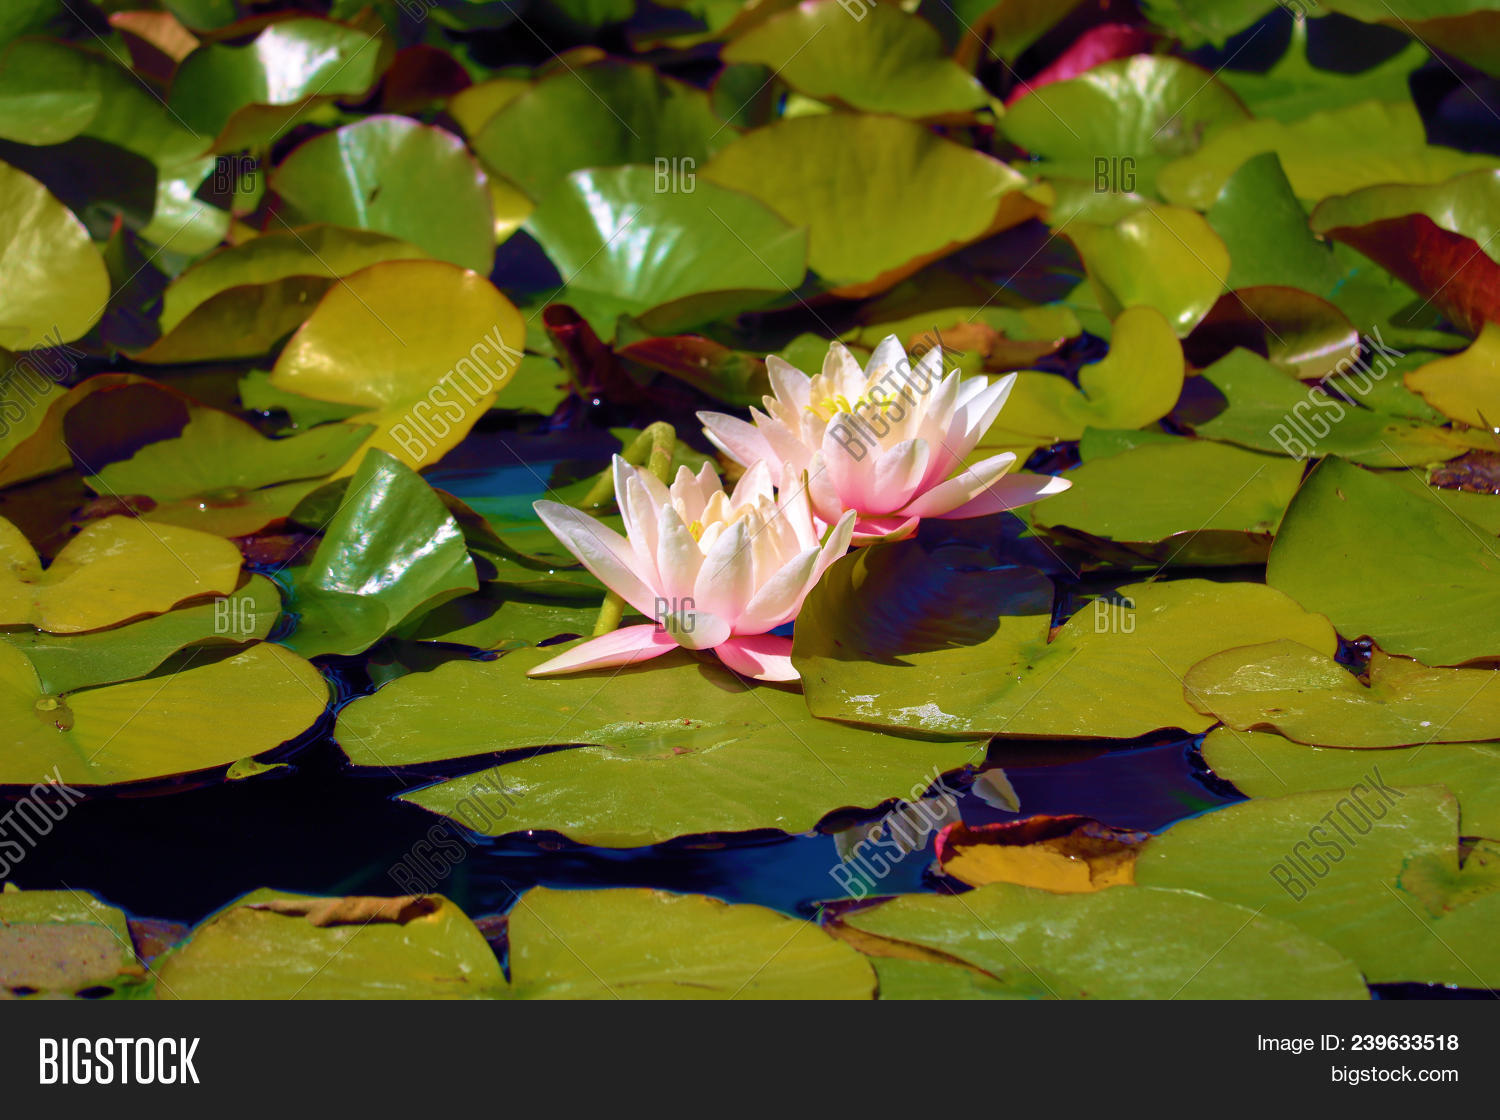 Lily pads lotus image photo free trial bigstock lily pads with lotus flowers taken at a koi lily pond in a garden izmirmasajfo